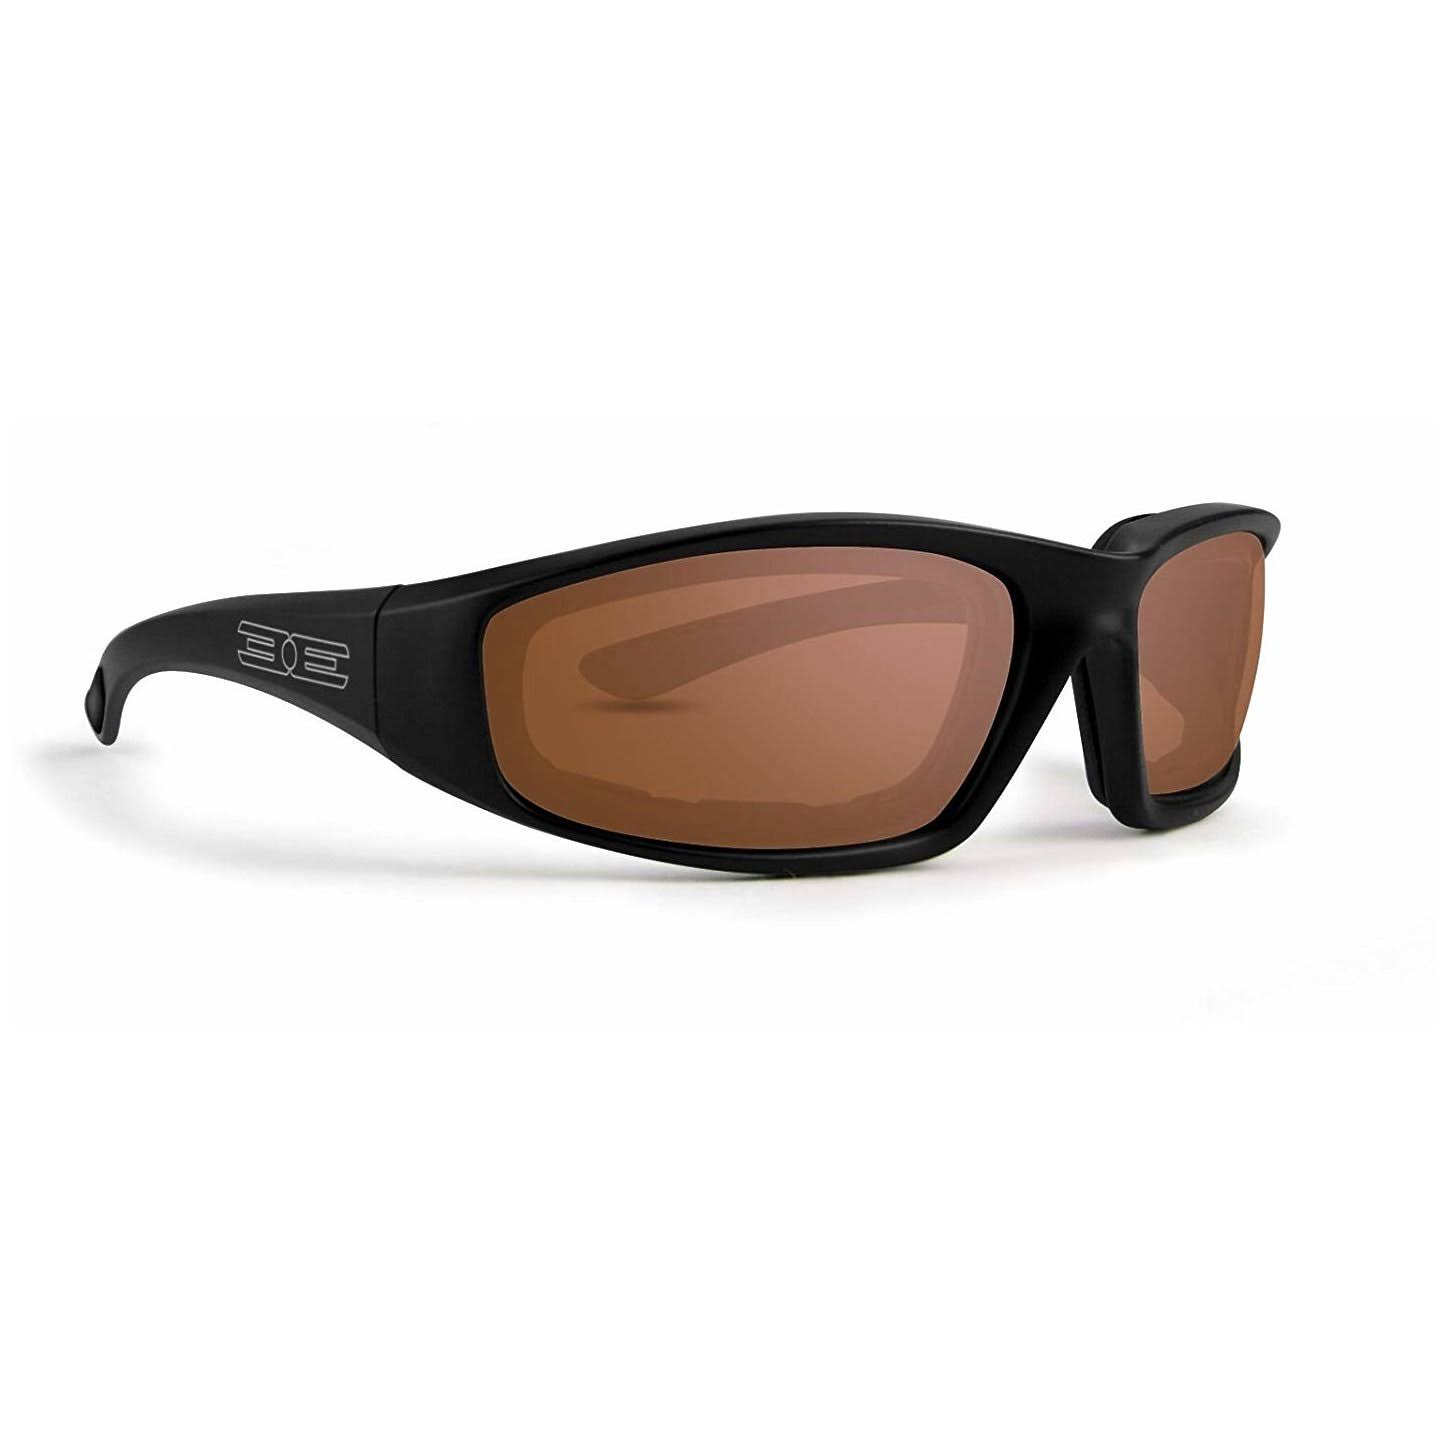 Epoch Foam Padded Motorcycle Sunglasses - Black, Smoke Lenses